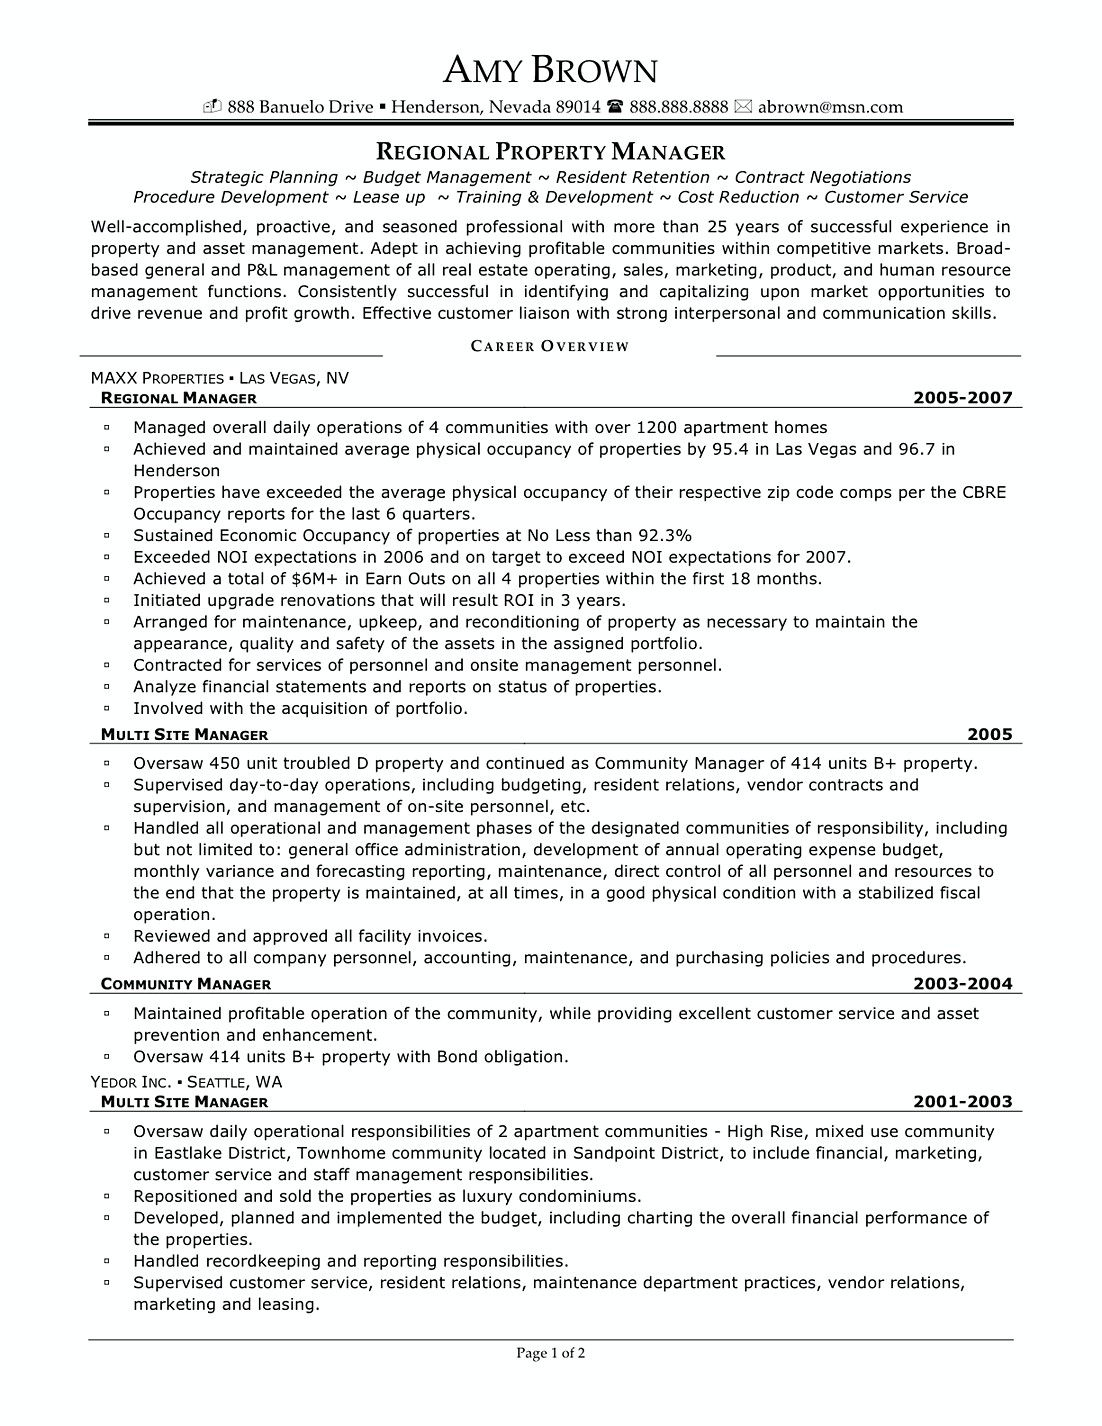 Brand Manager Resume Regional Property Manager Resume Samples  Commercial Property